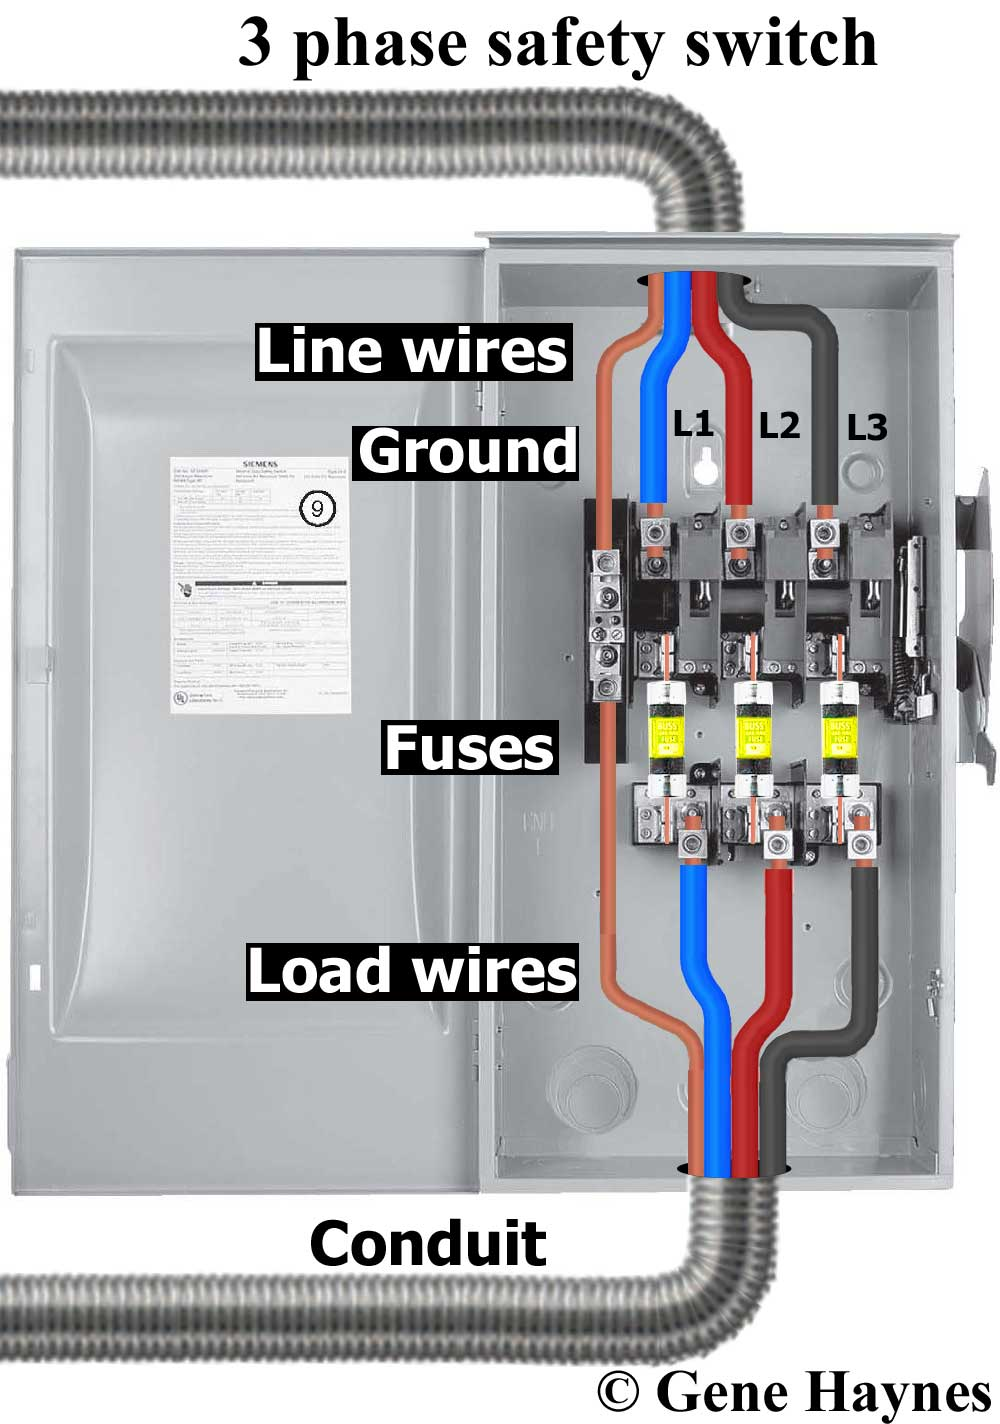 240 Volt 4 Wire Disconnect Center Diagram For Volts How To Safety Switch Rh Waterheatertimer Org Ac Wiring 8